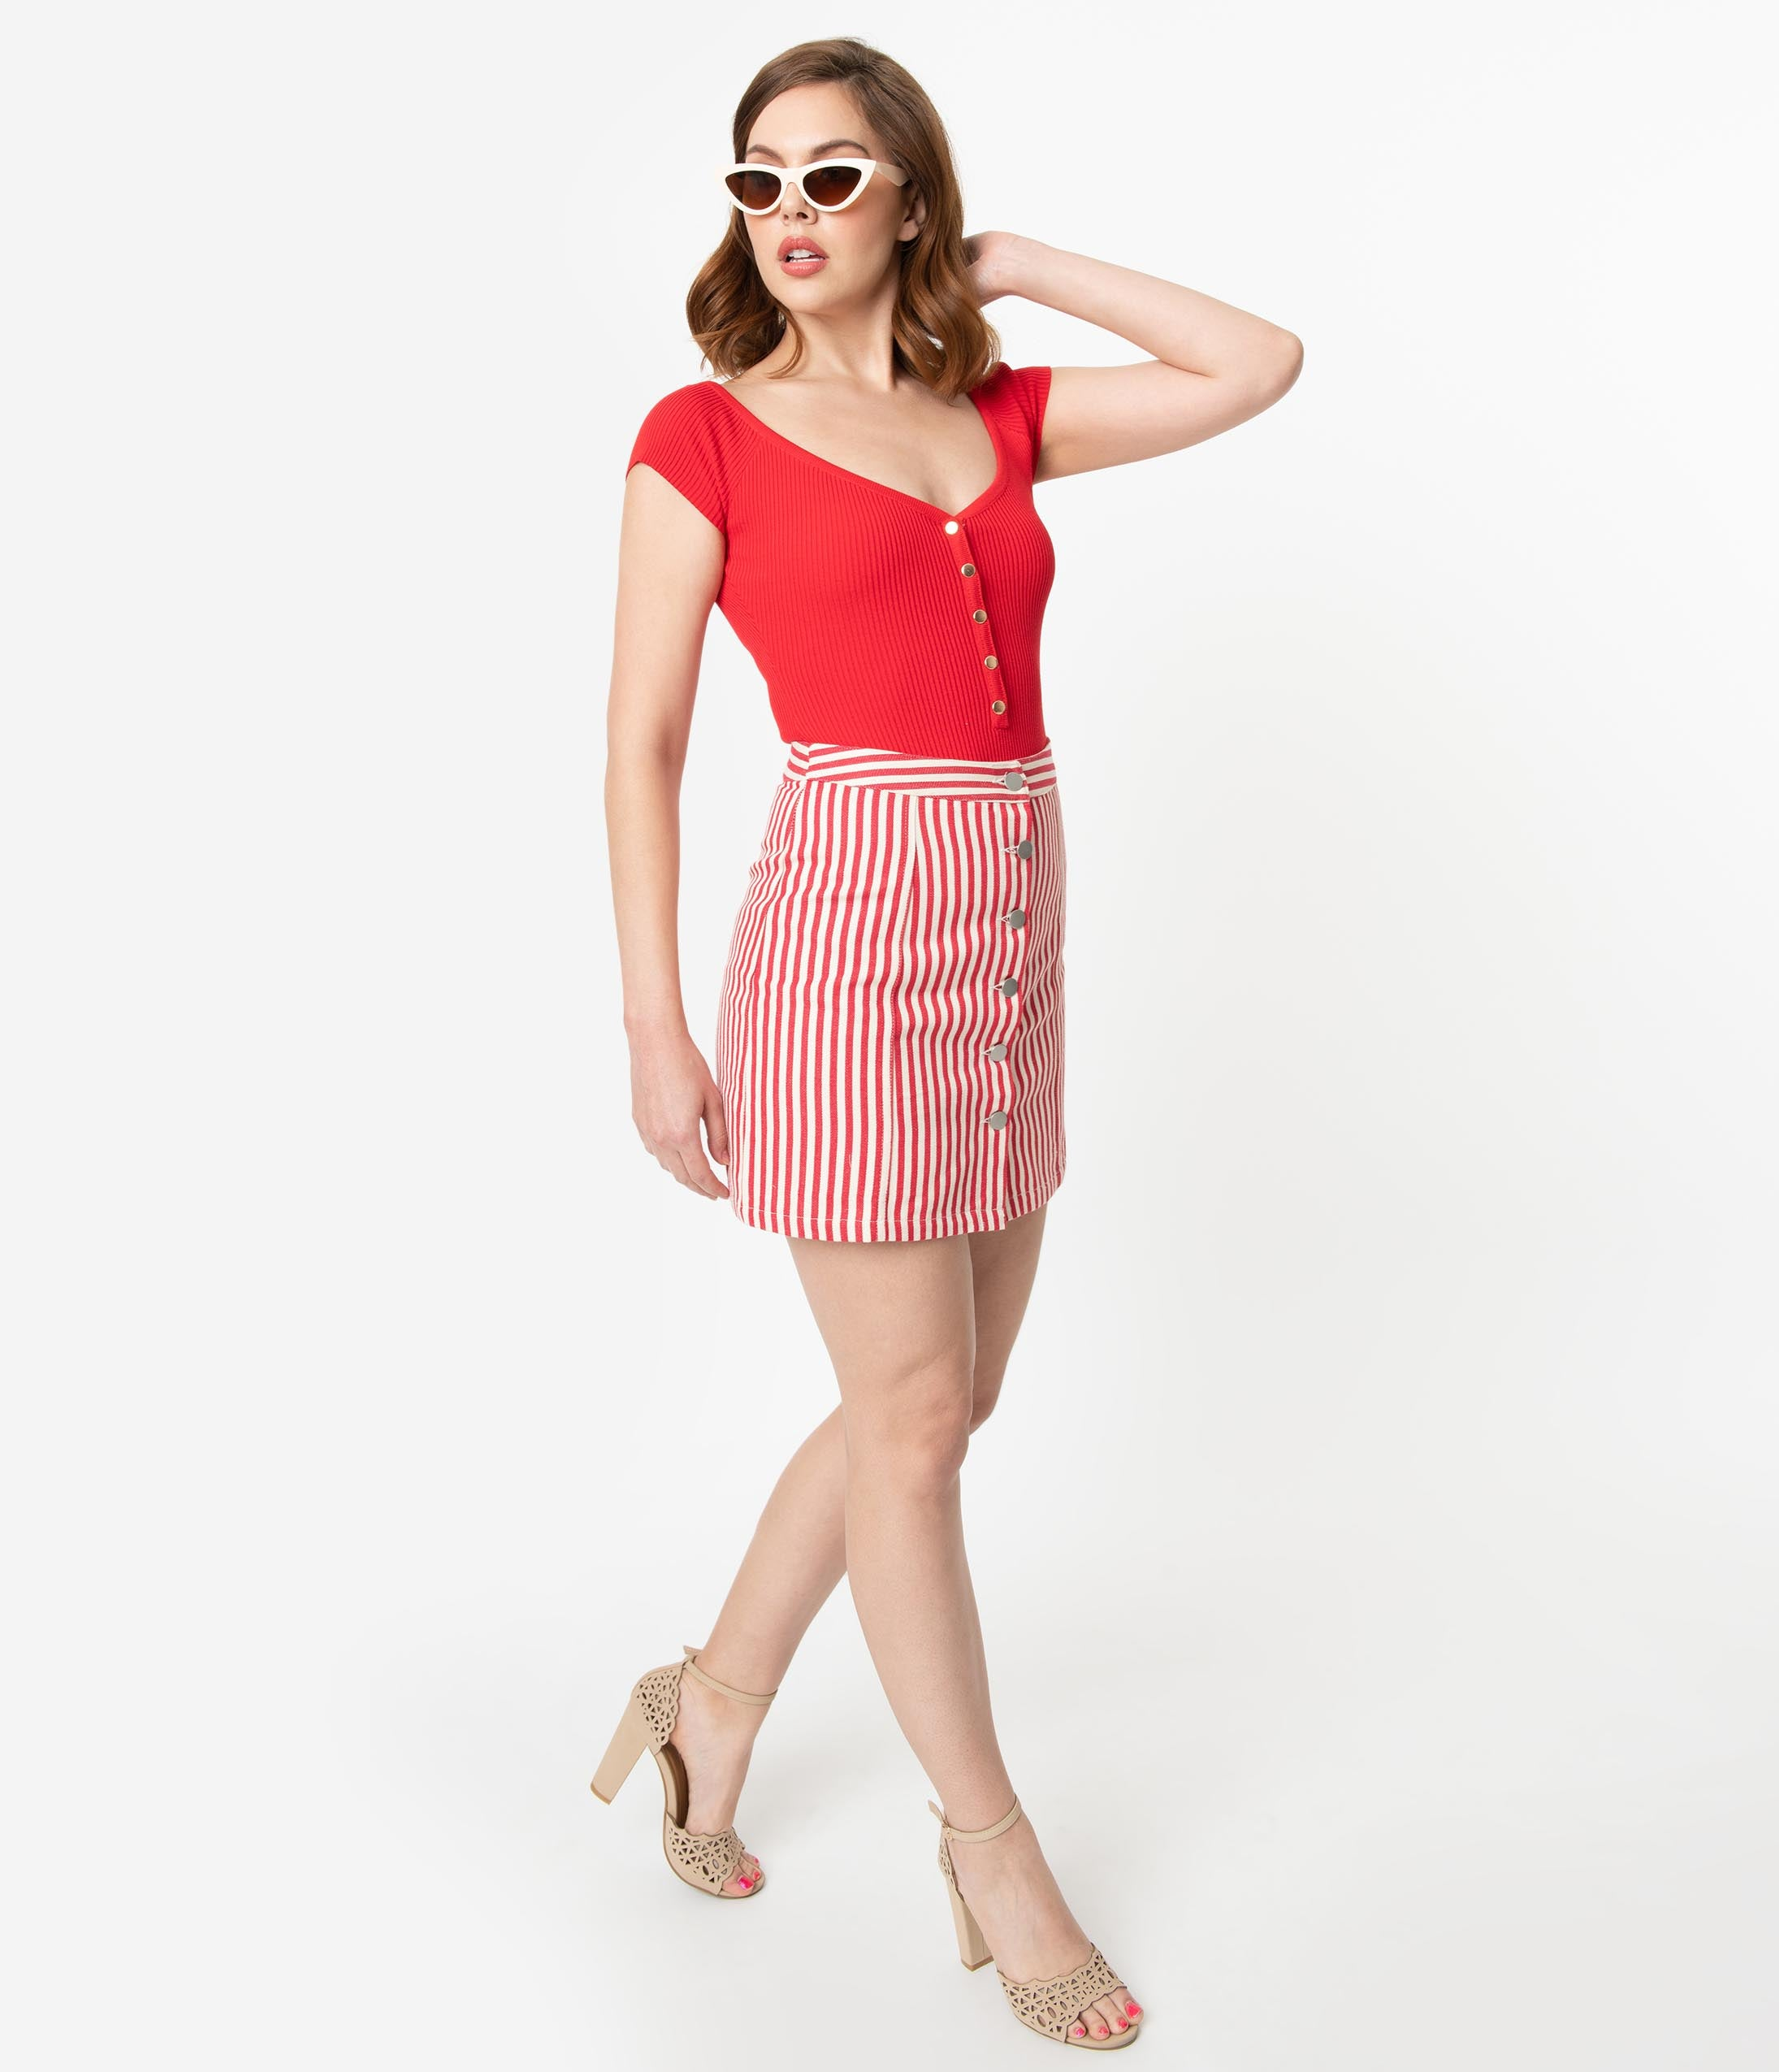 0a9568cc95 Vintage Clothing & Dresses – Retro Clothing Styles | Unique Vintage